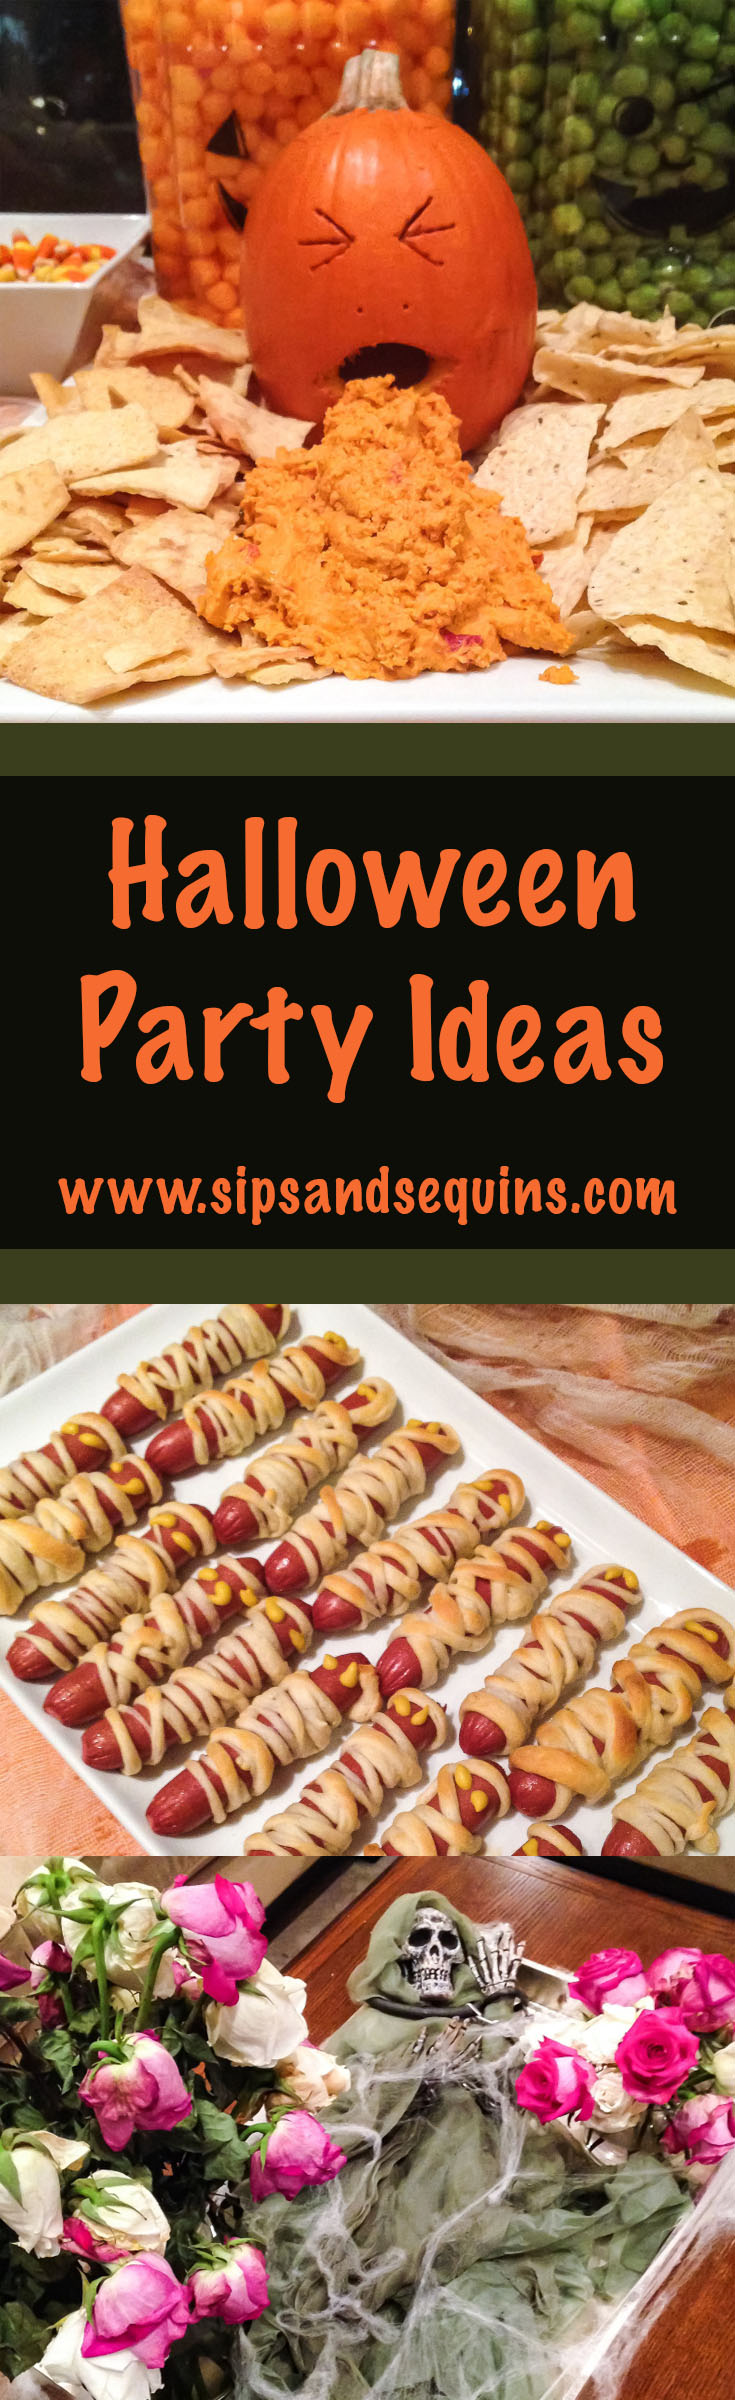 Halloween_Party_Ideas_Pin